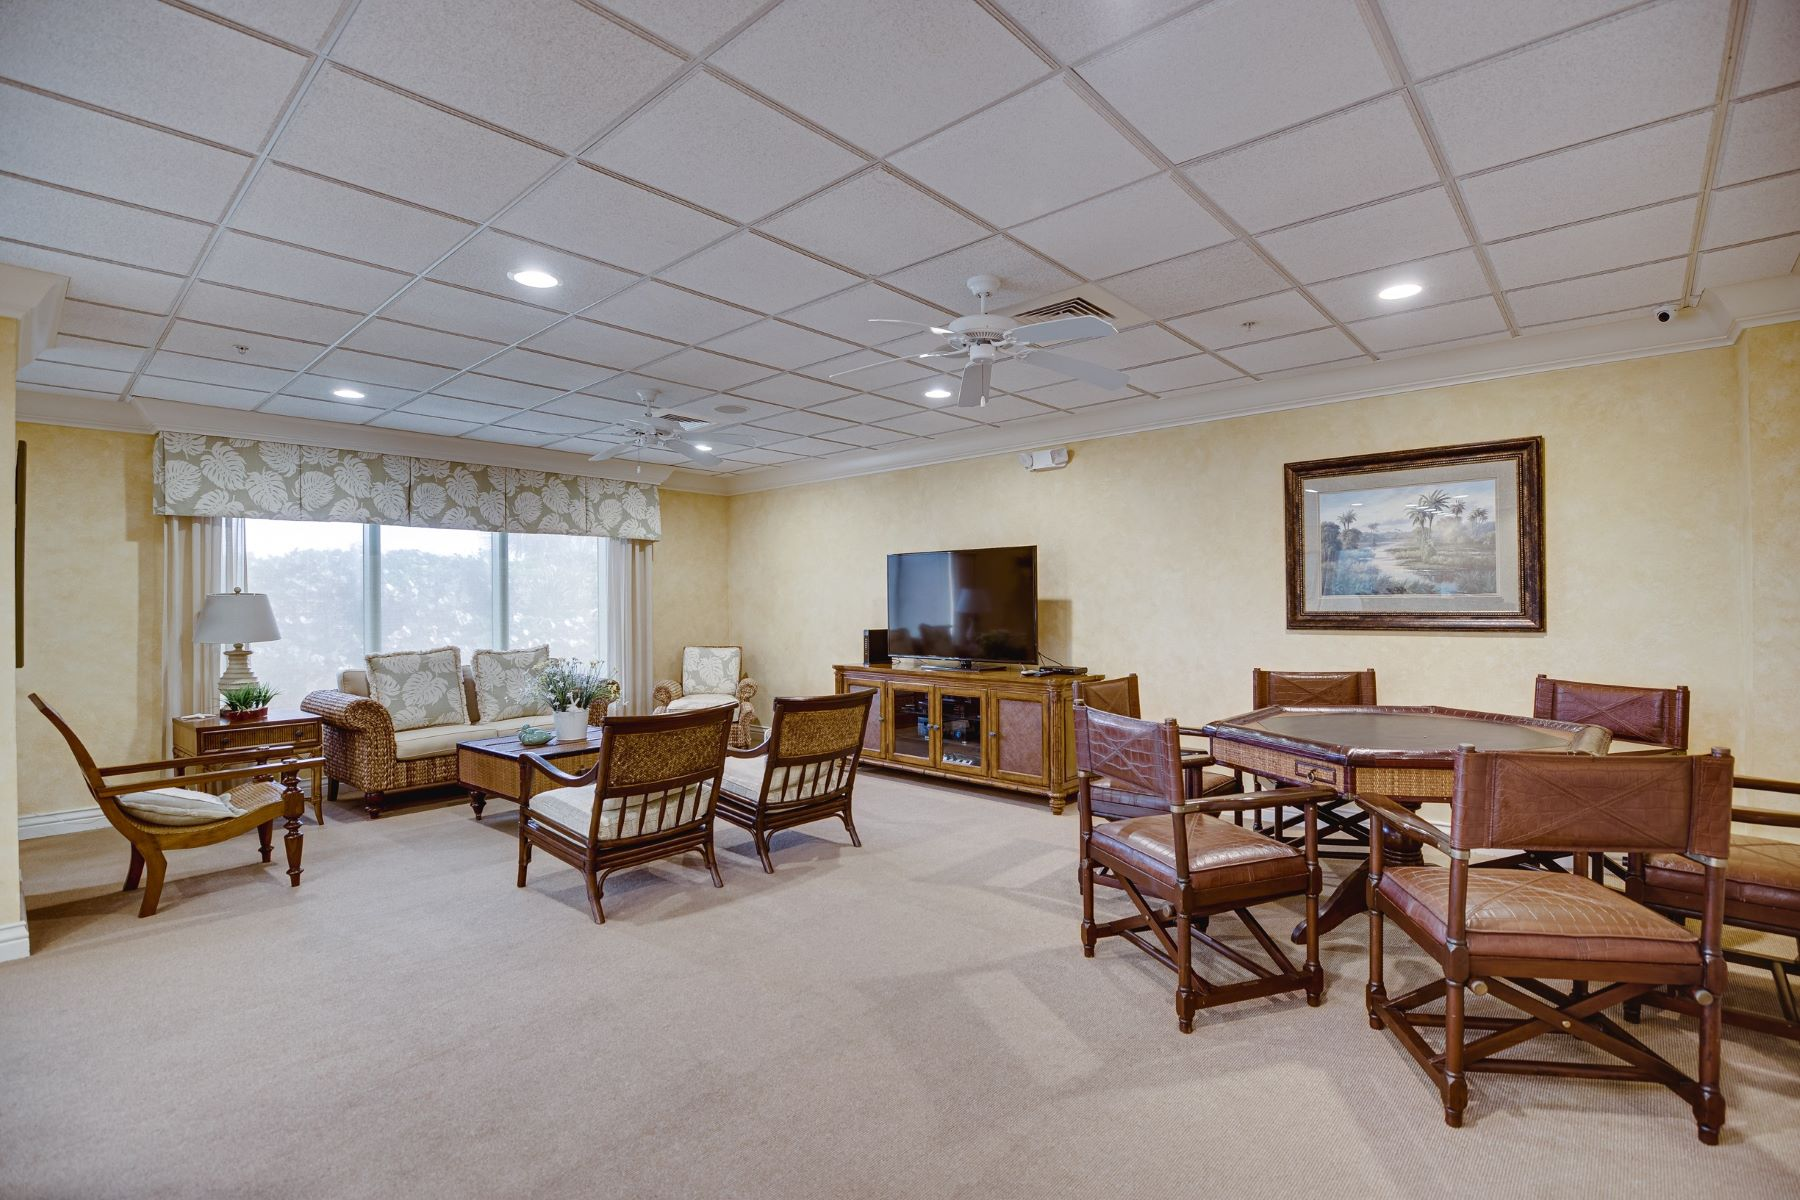 Additional photo for property listing at Luxury Oceanfront Condo 4310 N Highway A1a 702S Hutchinson Island, Florida 34949 United States